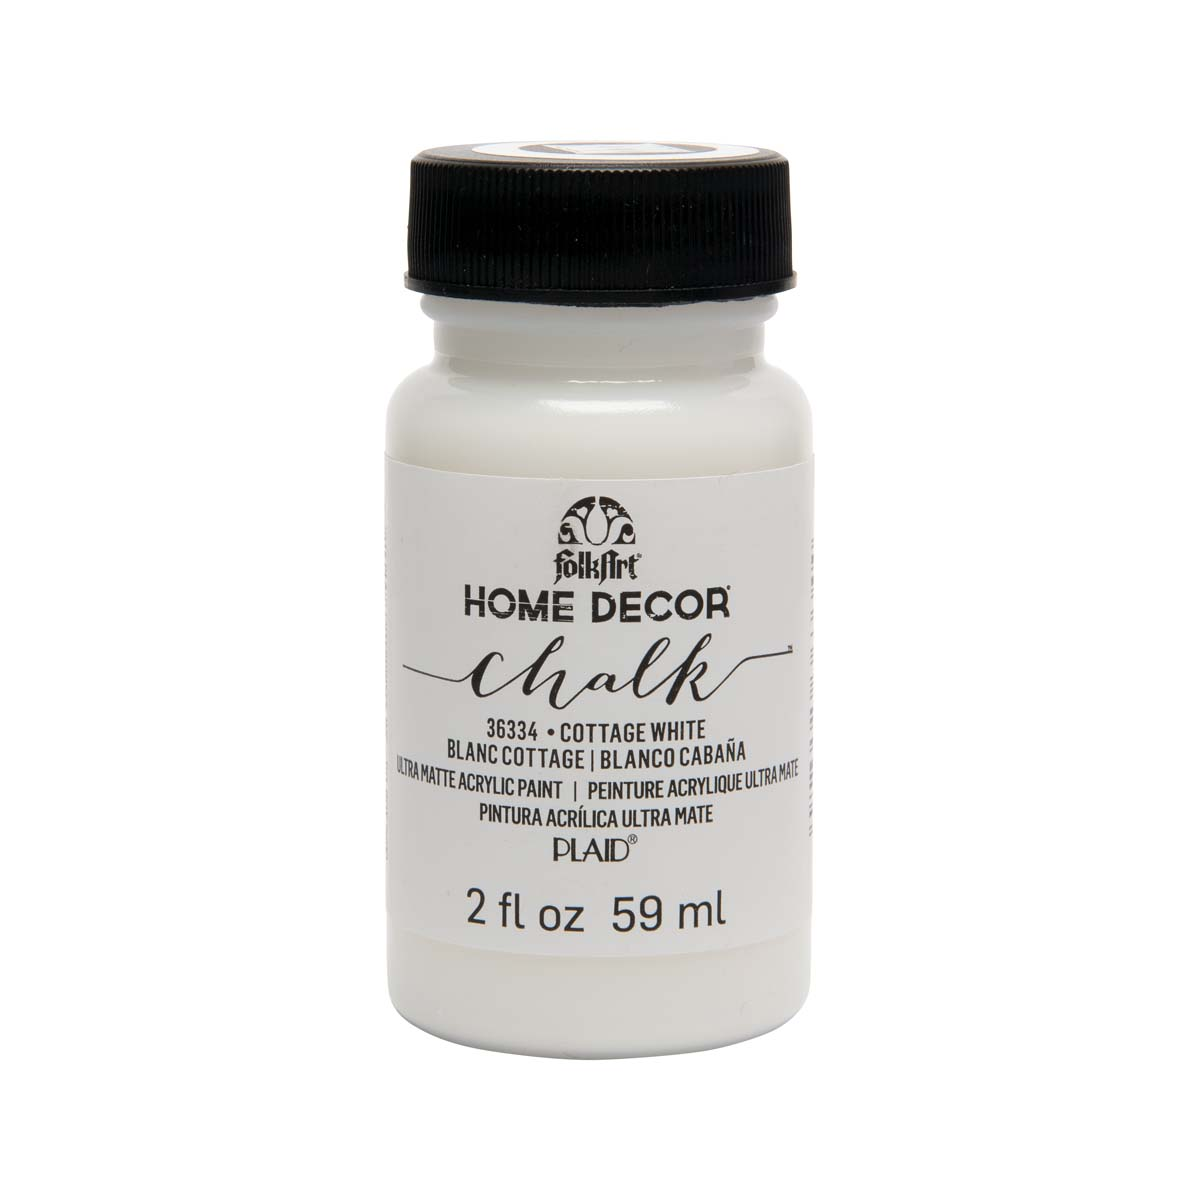 FolkArt ® Home Decor™ Chalk - Cottage White, 2 oz. - 36334